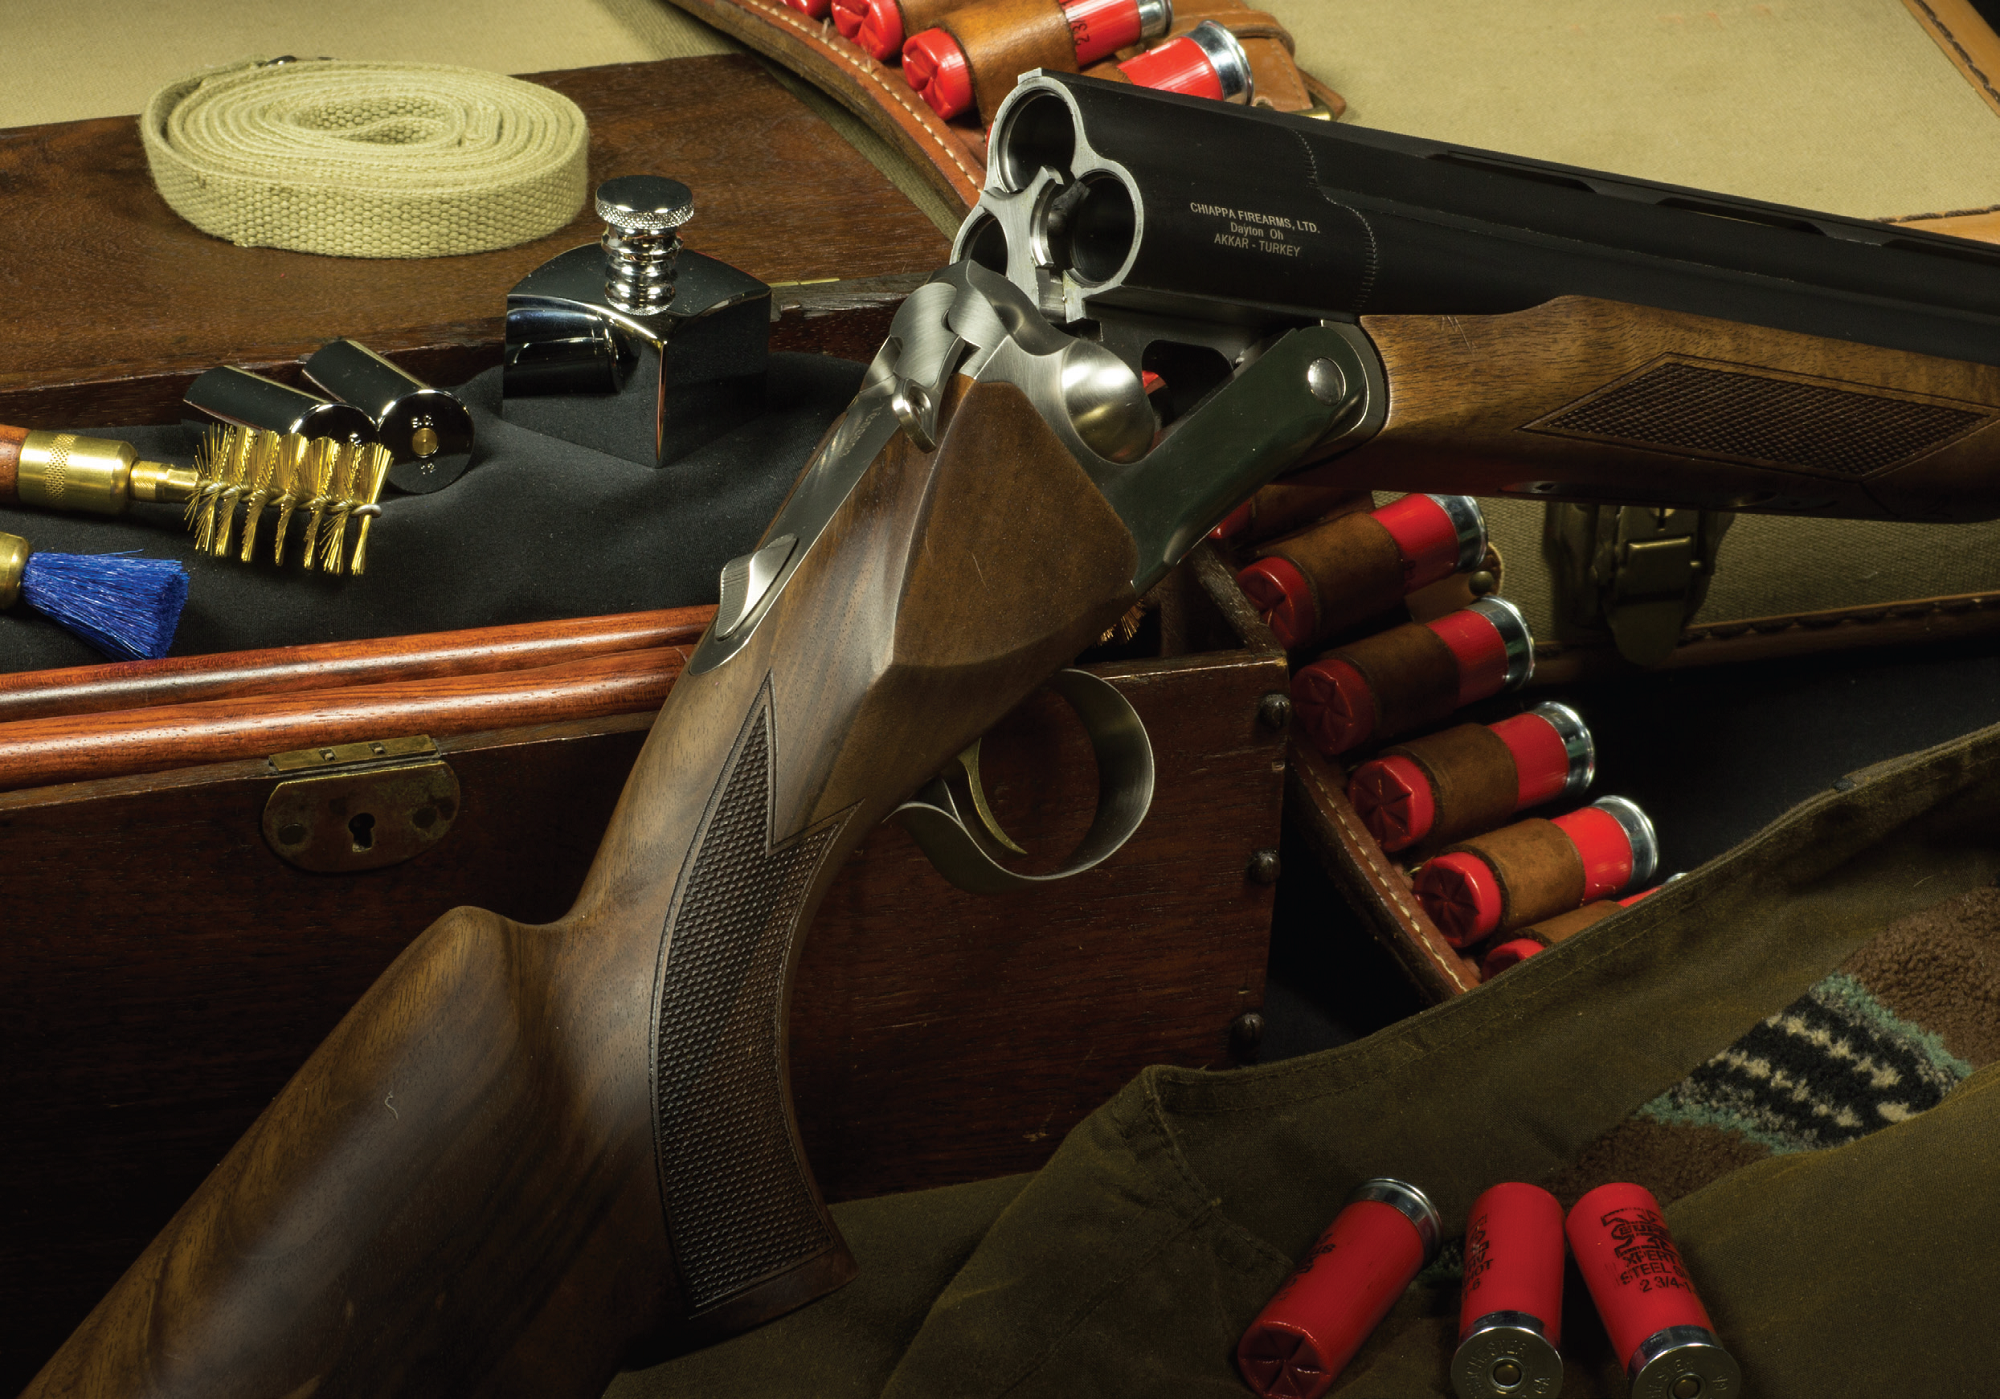 The massive breech of Chiappa's three-barrel shotguns is made in Turkey by AKKAR